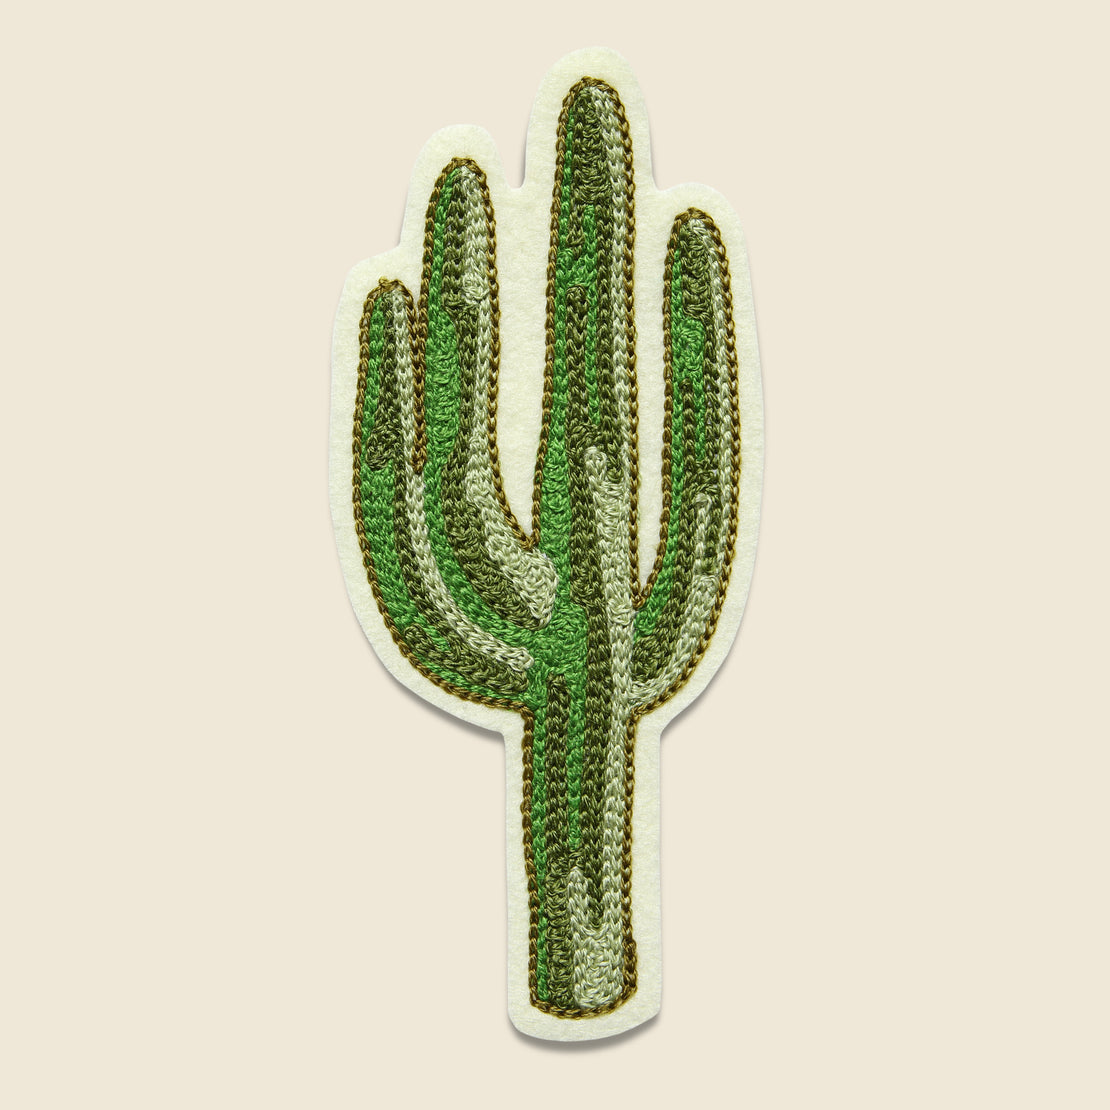 Fort Lonesome Patch - Saguaro Cactus